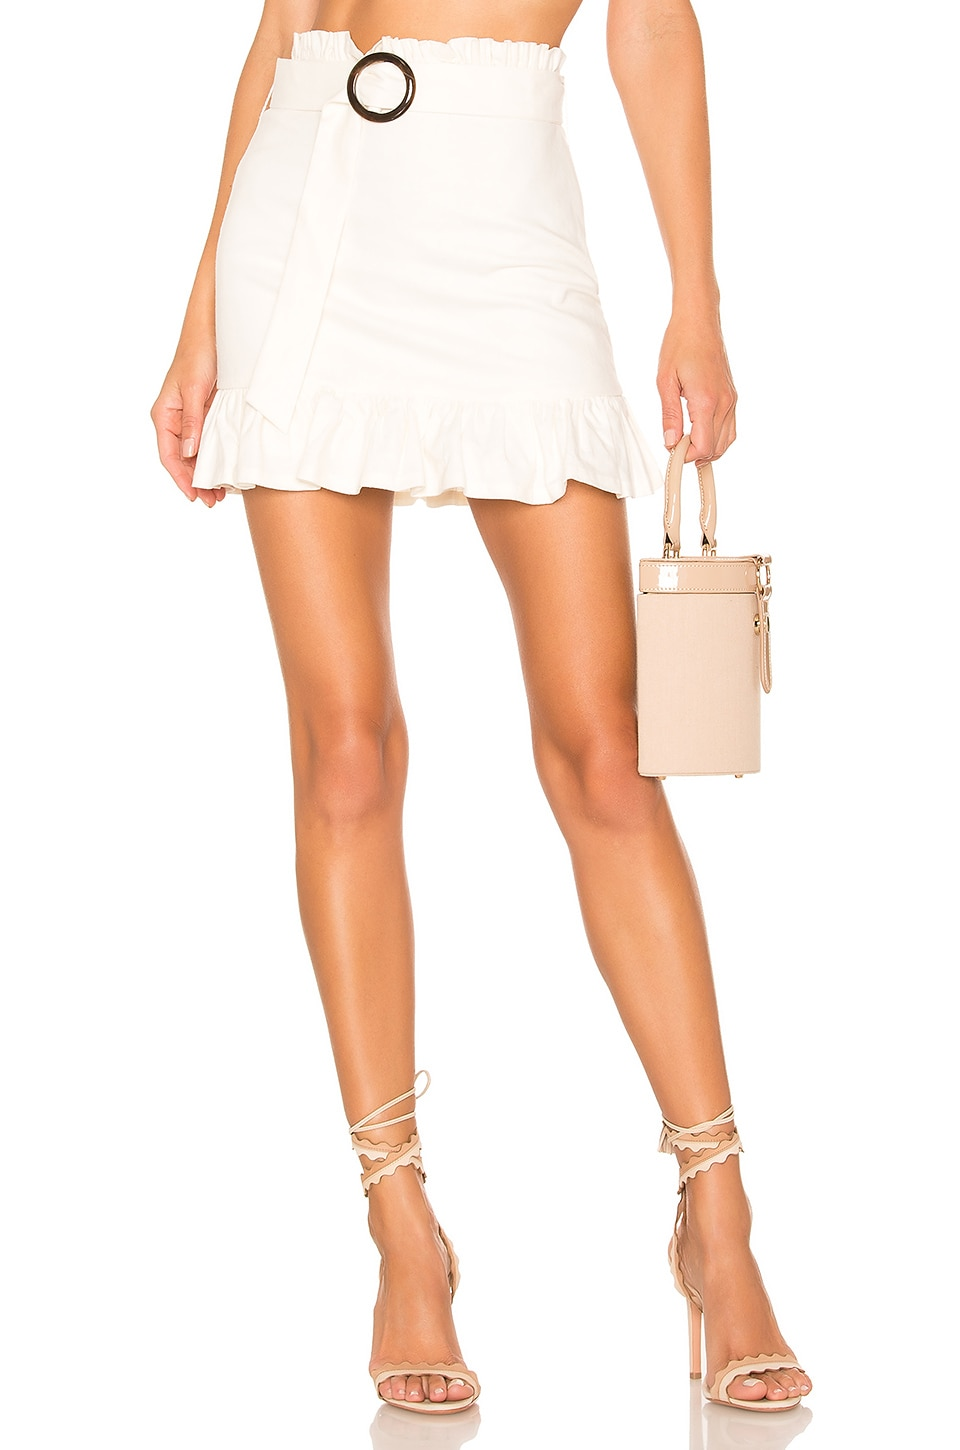 Lovers + Friends Camden Mini Skirt in White